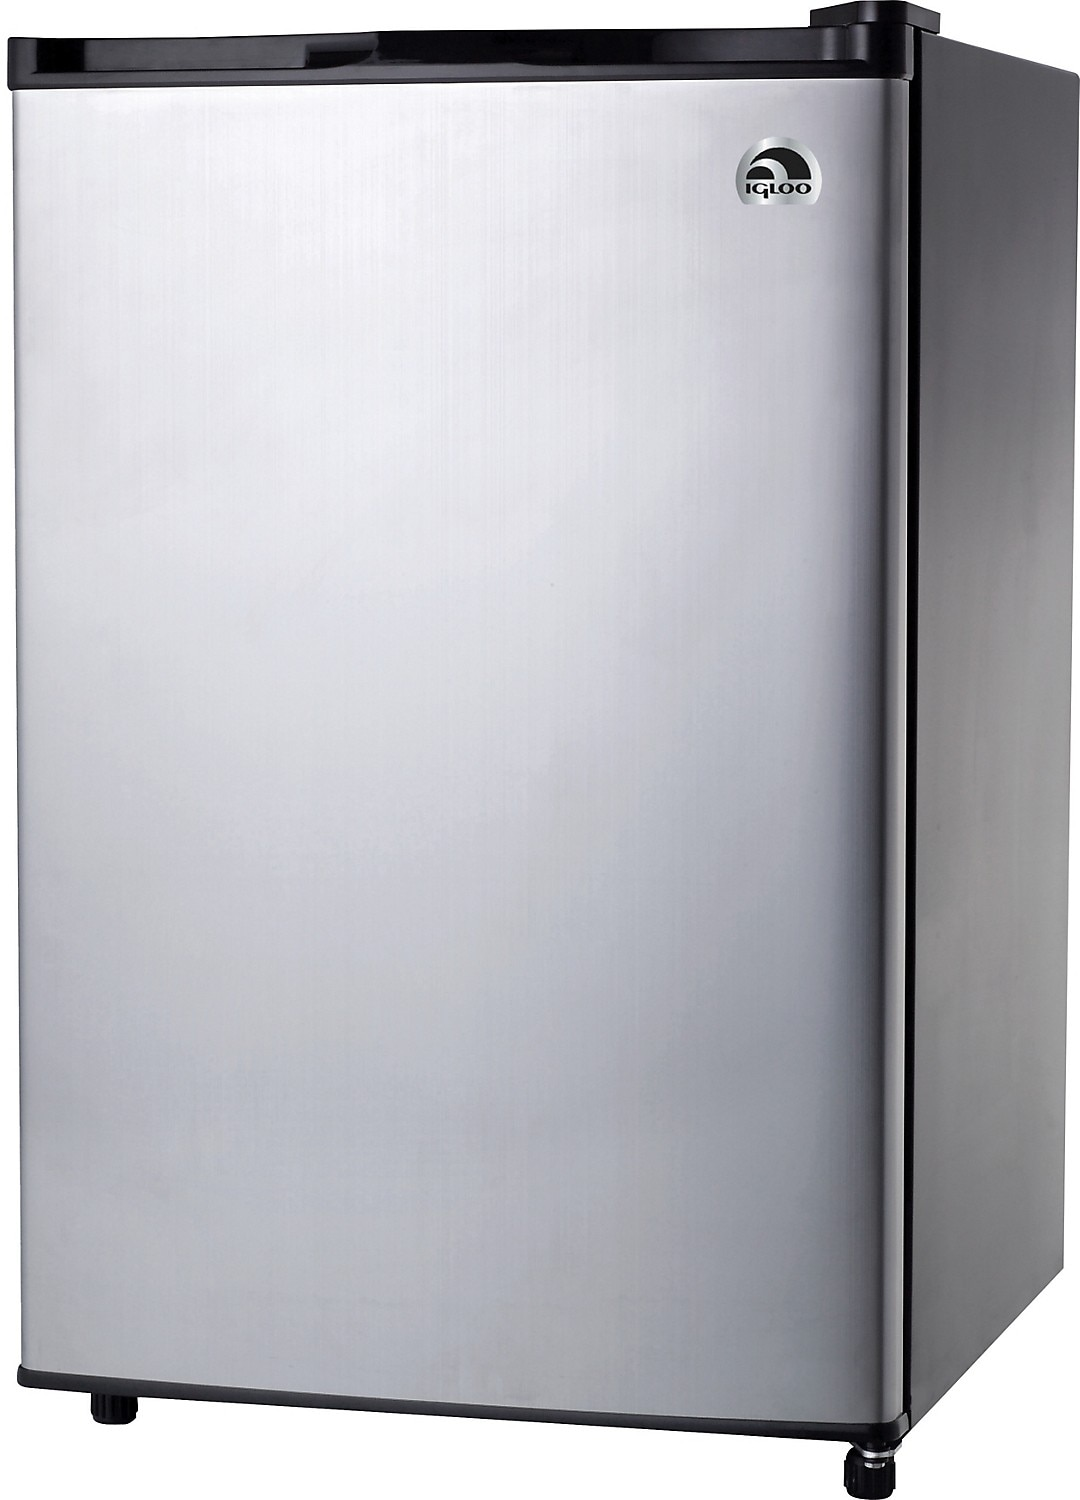 Refrigerators and Freezers - Igloo 4.6 Cu. Ft. Compact Refrigerator - Stainless Steel